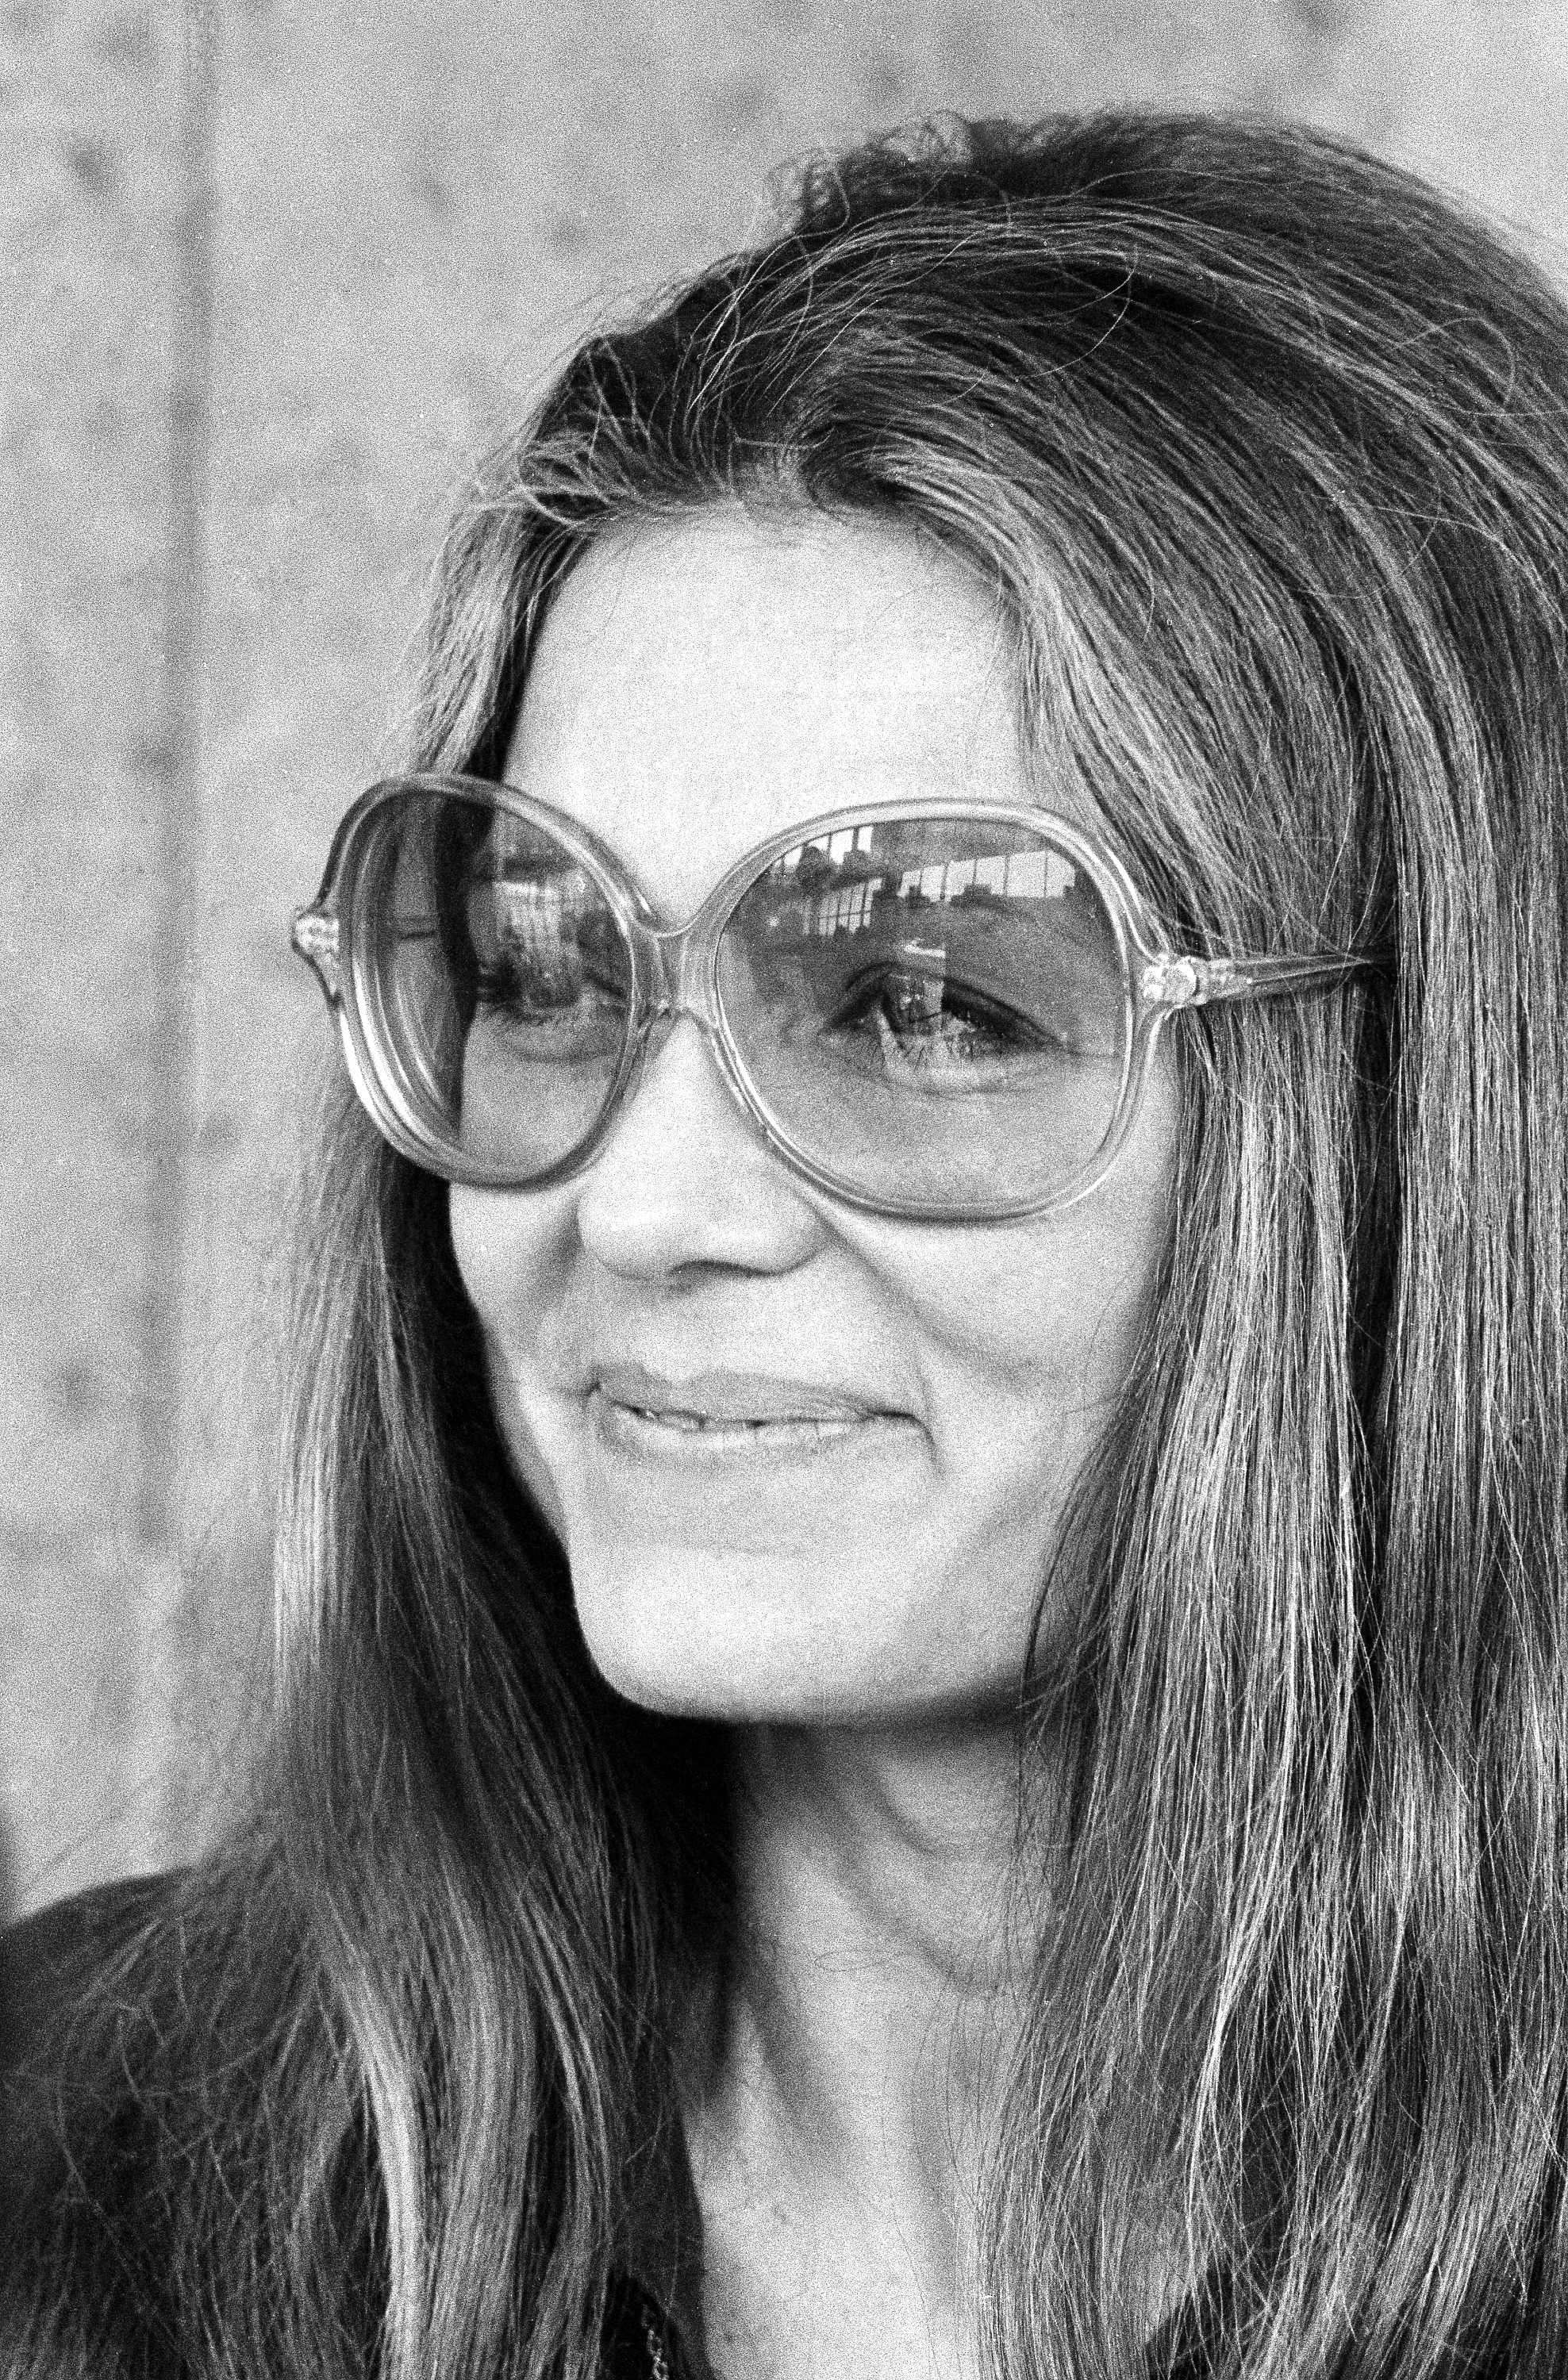 """Gloria Steinem on women, equality and why """"one of the current dangers is the idea that the movement is over"""""""